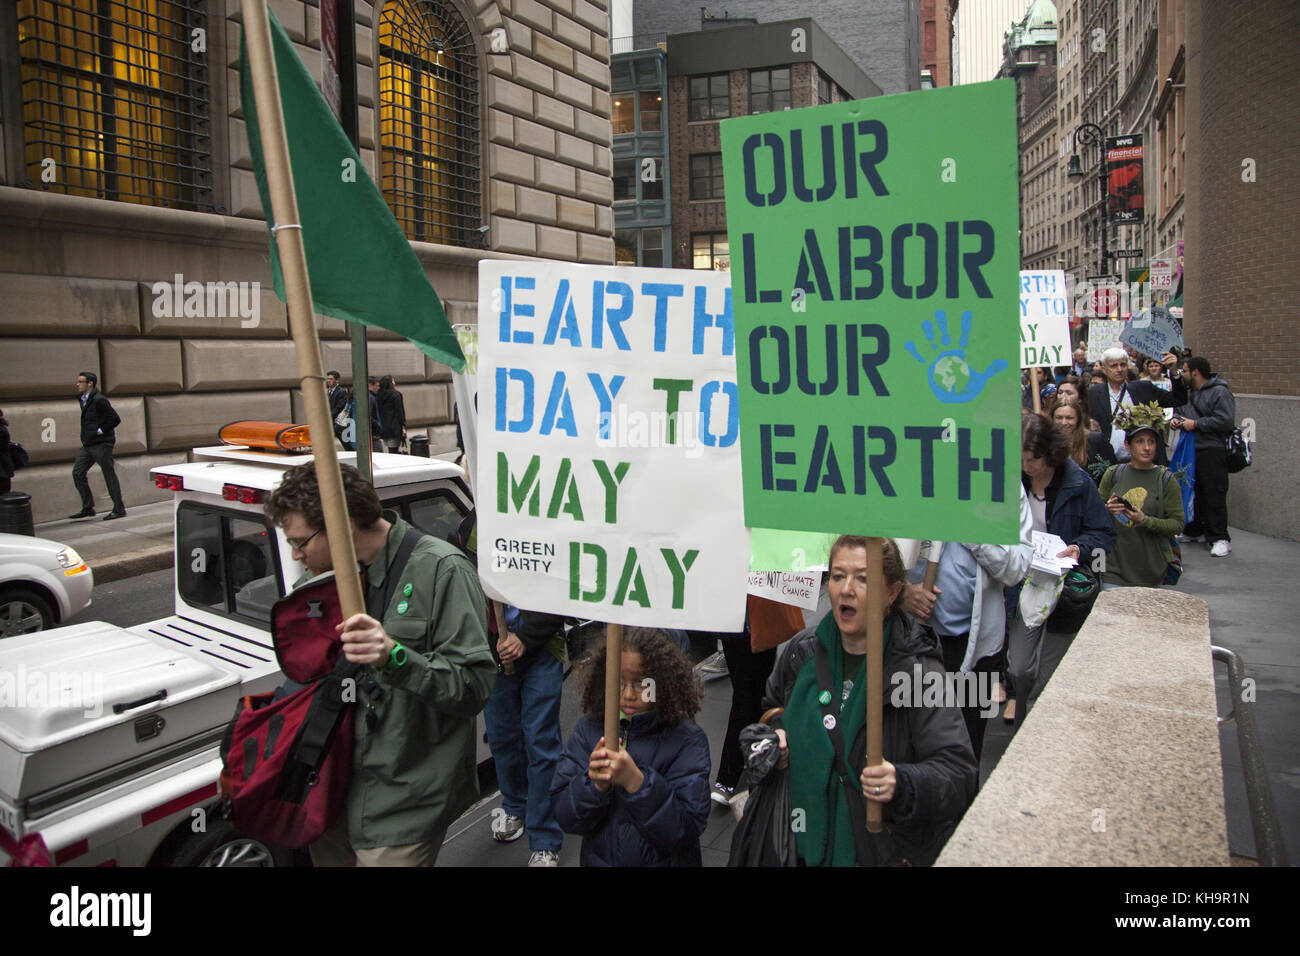 Environmental activists rally on Earth Day at Zuccotti Park, then march to Wall Street calling for system change - Stock Image